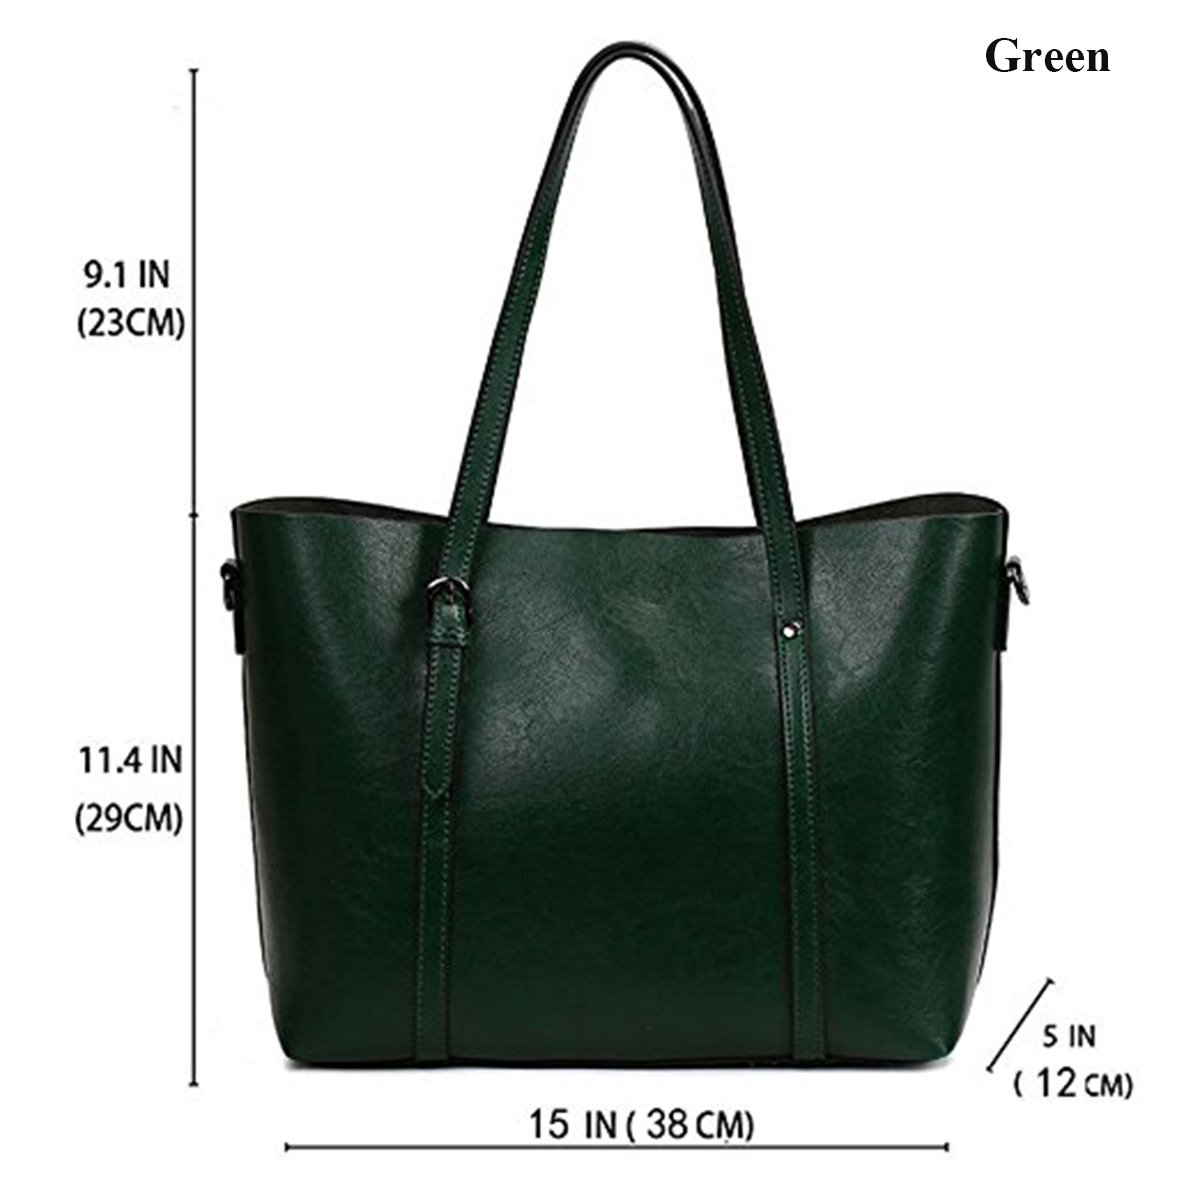 oboss Classic Handbags for Women Ladies Handle Hobo Shoulder Satchel Tote Bags Purse for Daily Travel